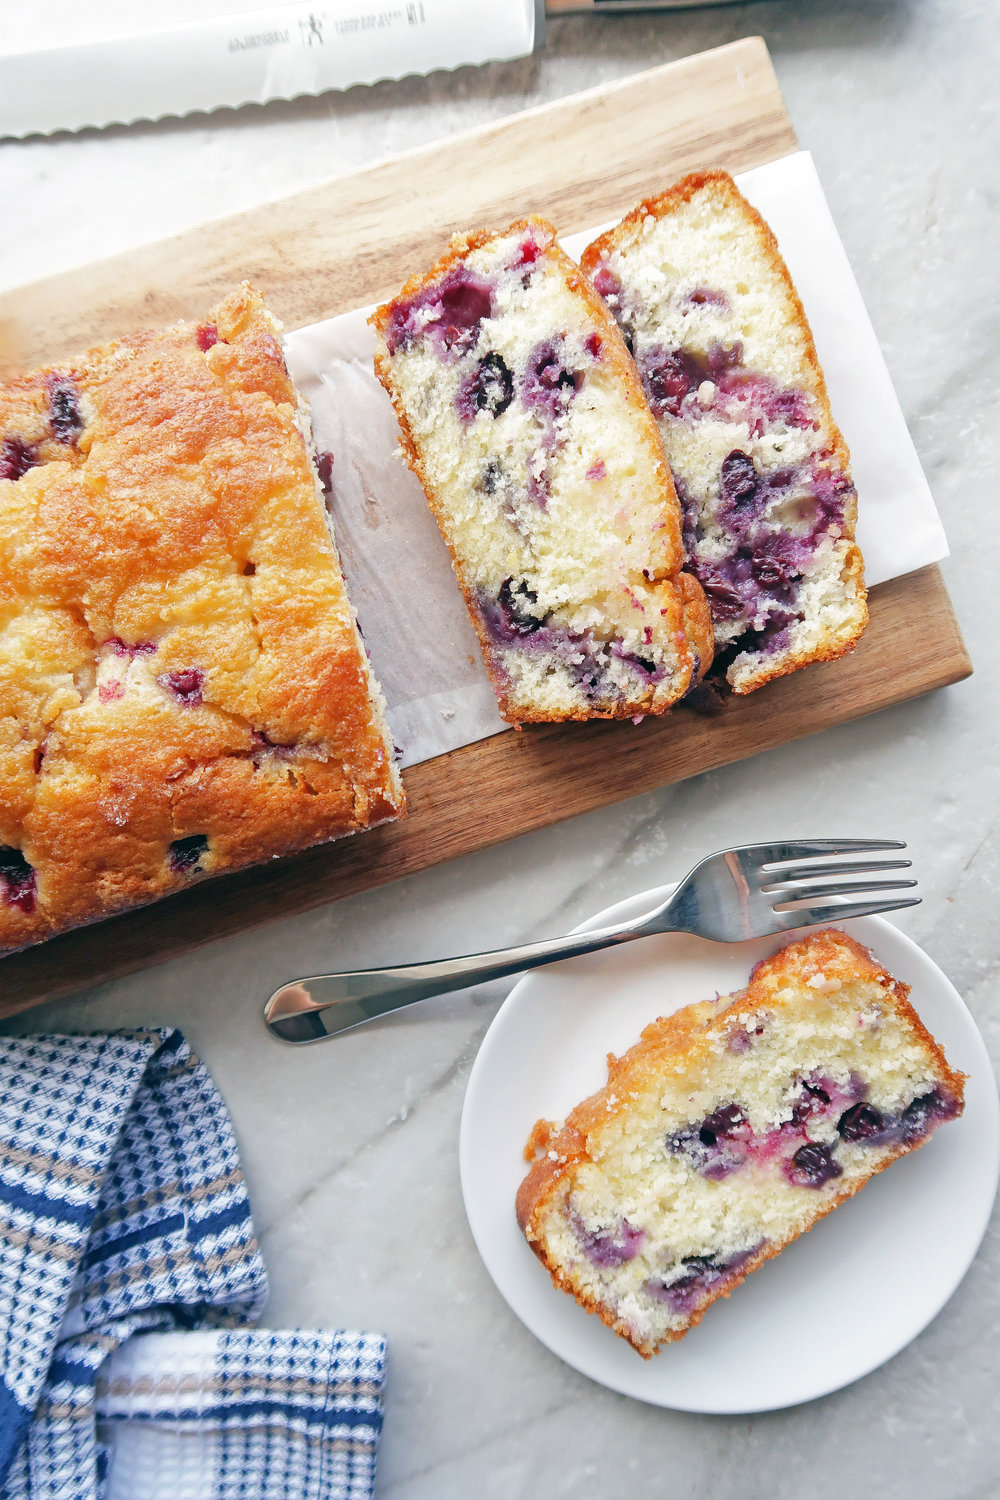 Piece of Classic Lemon Blueberry Loaf Cake on a white plate with fork; the remaining loaf cake on a long wooden board.